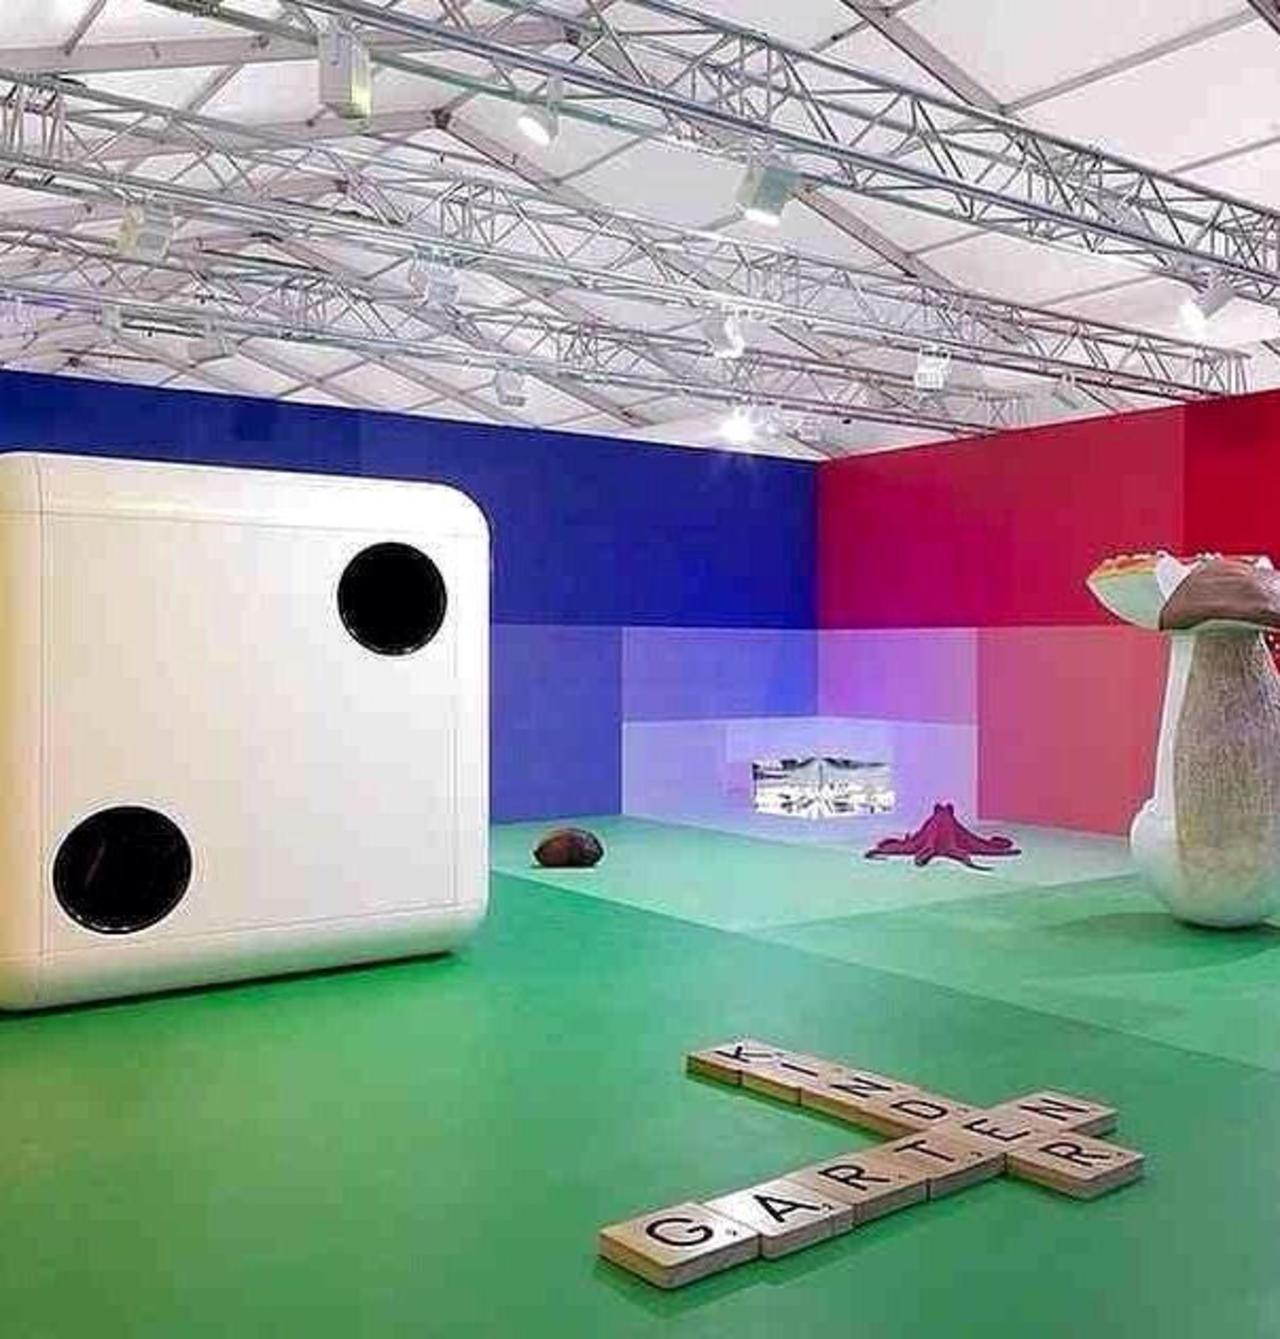 bold installations at @friezelondon #London #art #FriezeLondon http://t.co/OUcP3kXvUa